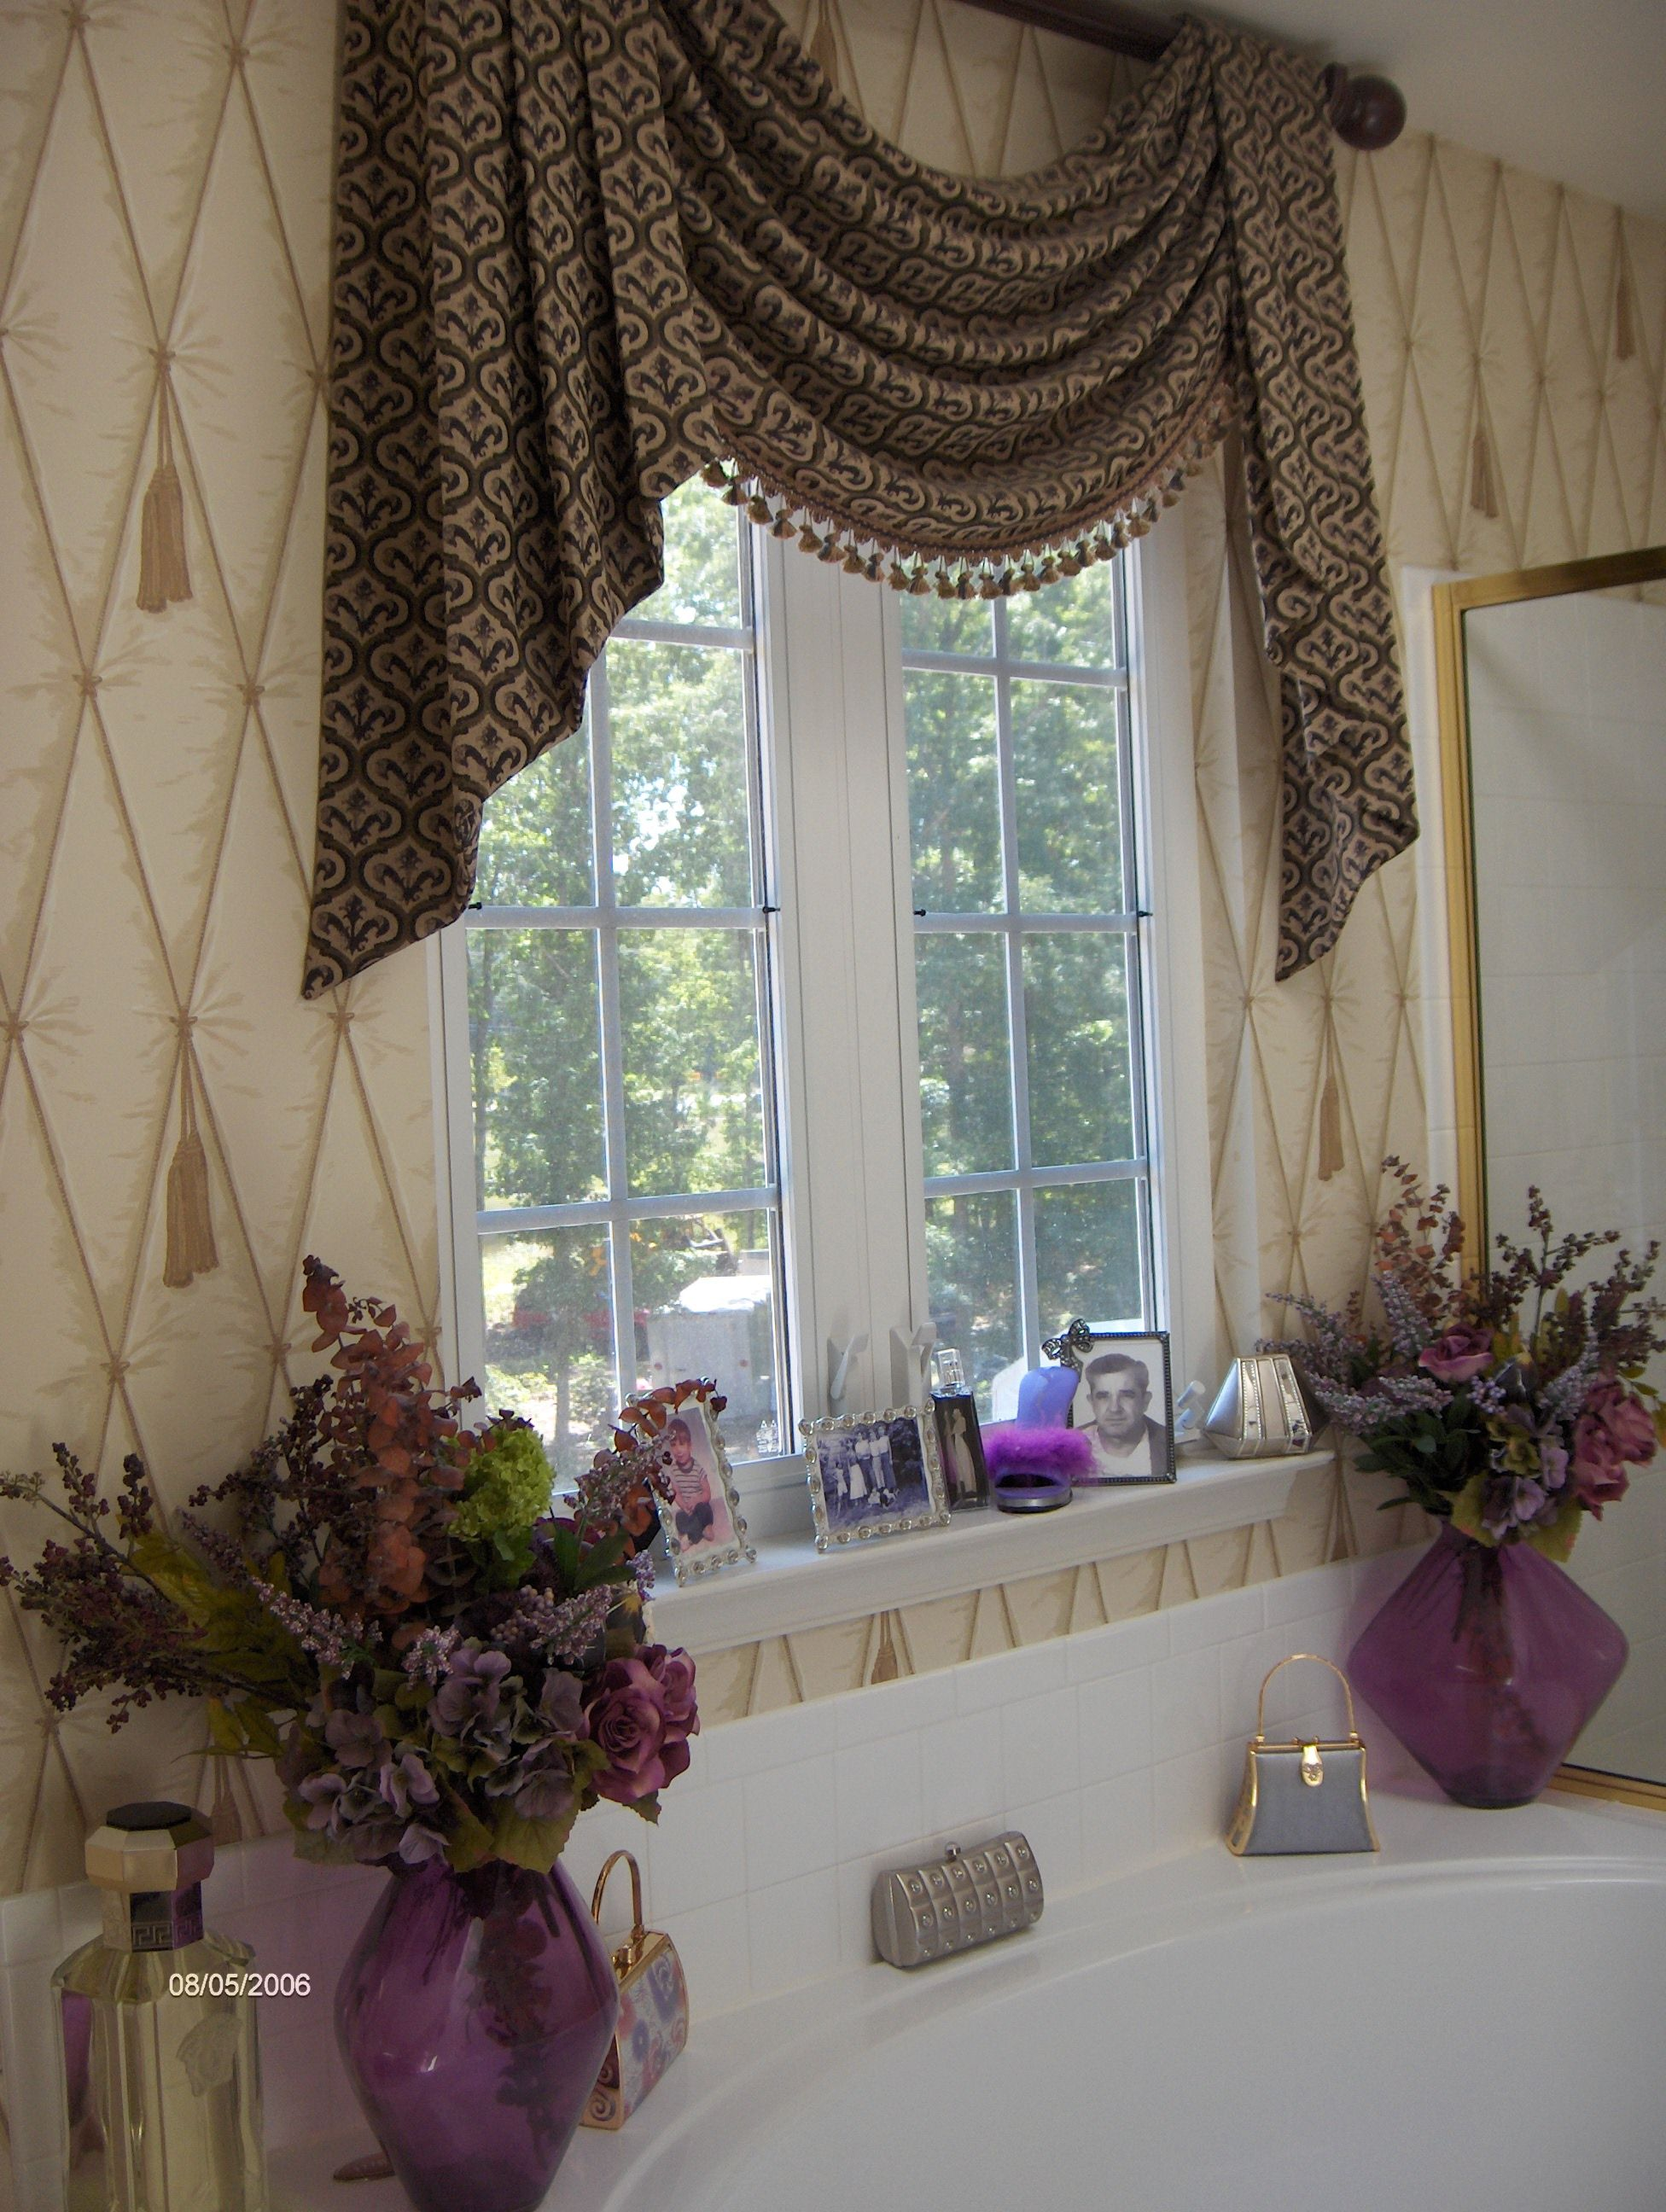 10  images about Bathroom windows on Pinterest   Balloon shades  Window coverings and Arch window treatments. 10  images about Bathroom windows on Pinterest   Balloon shades